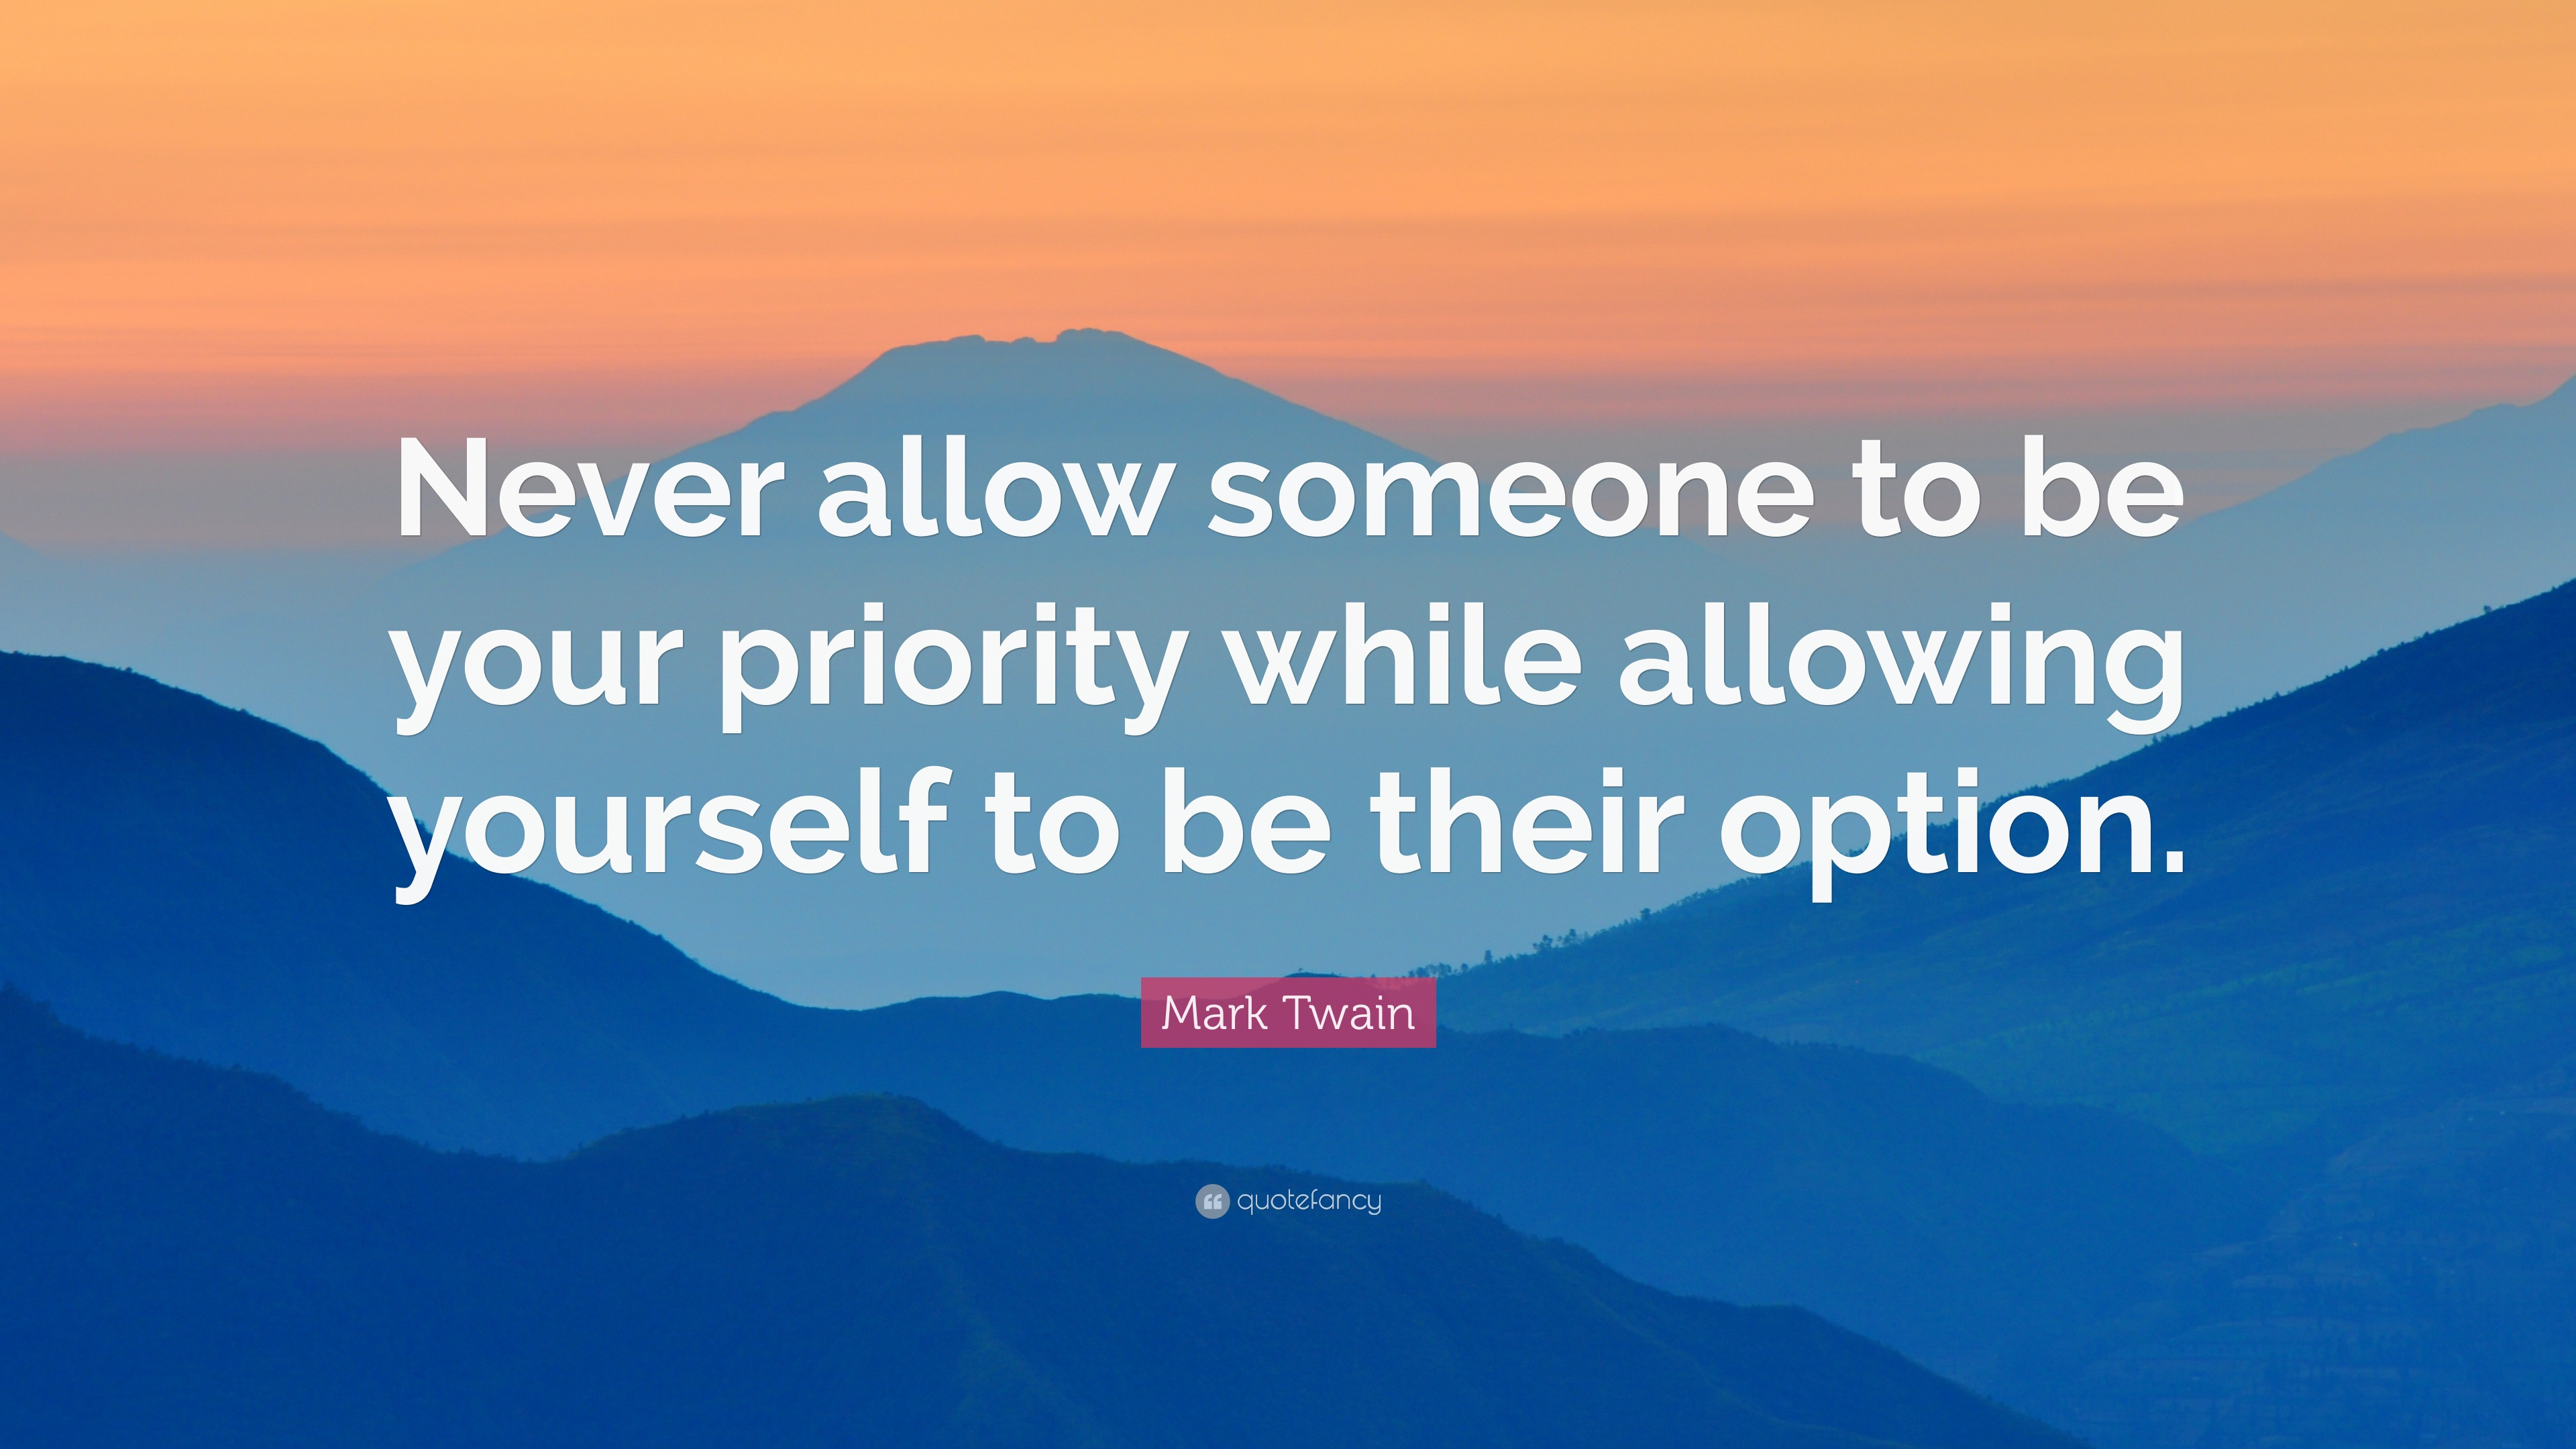 Never allow someone to be your priority while allowing yourself to be their option quote artwork 5 ways to deal with a breakup